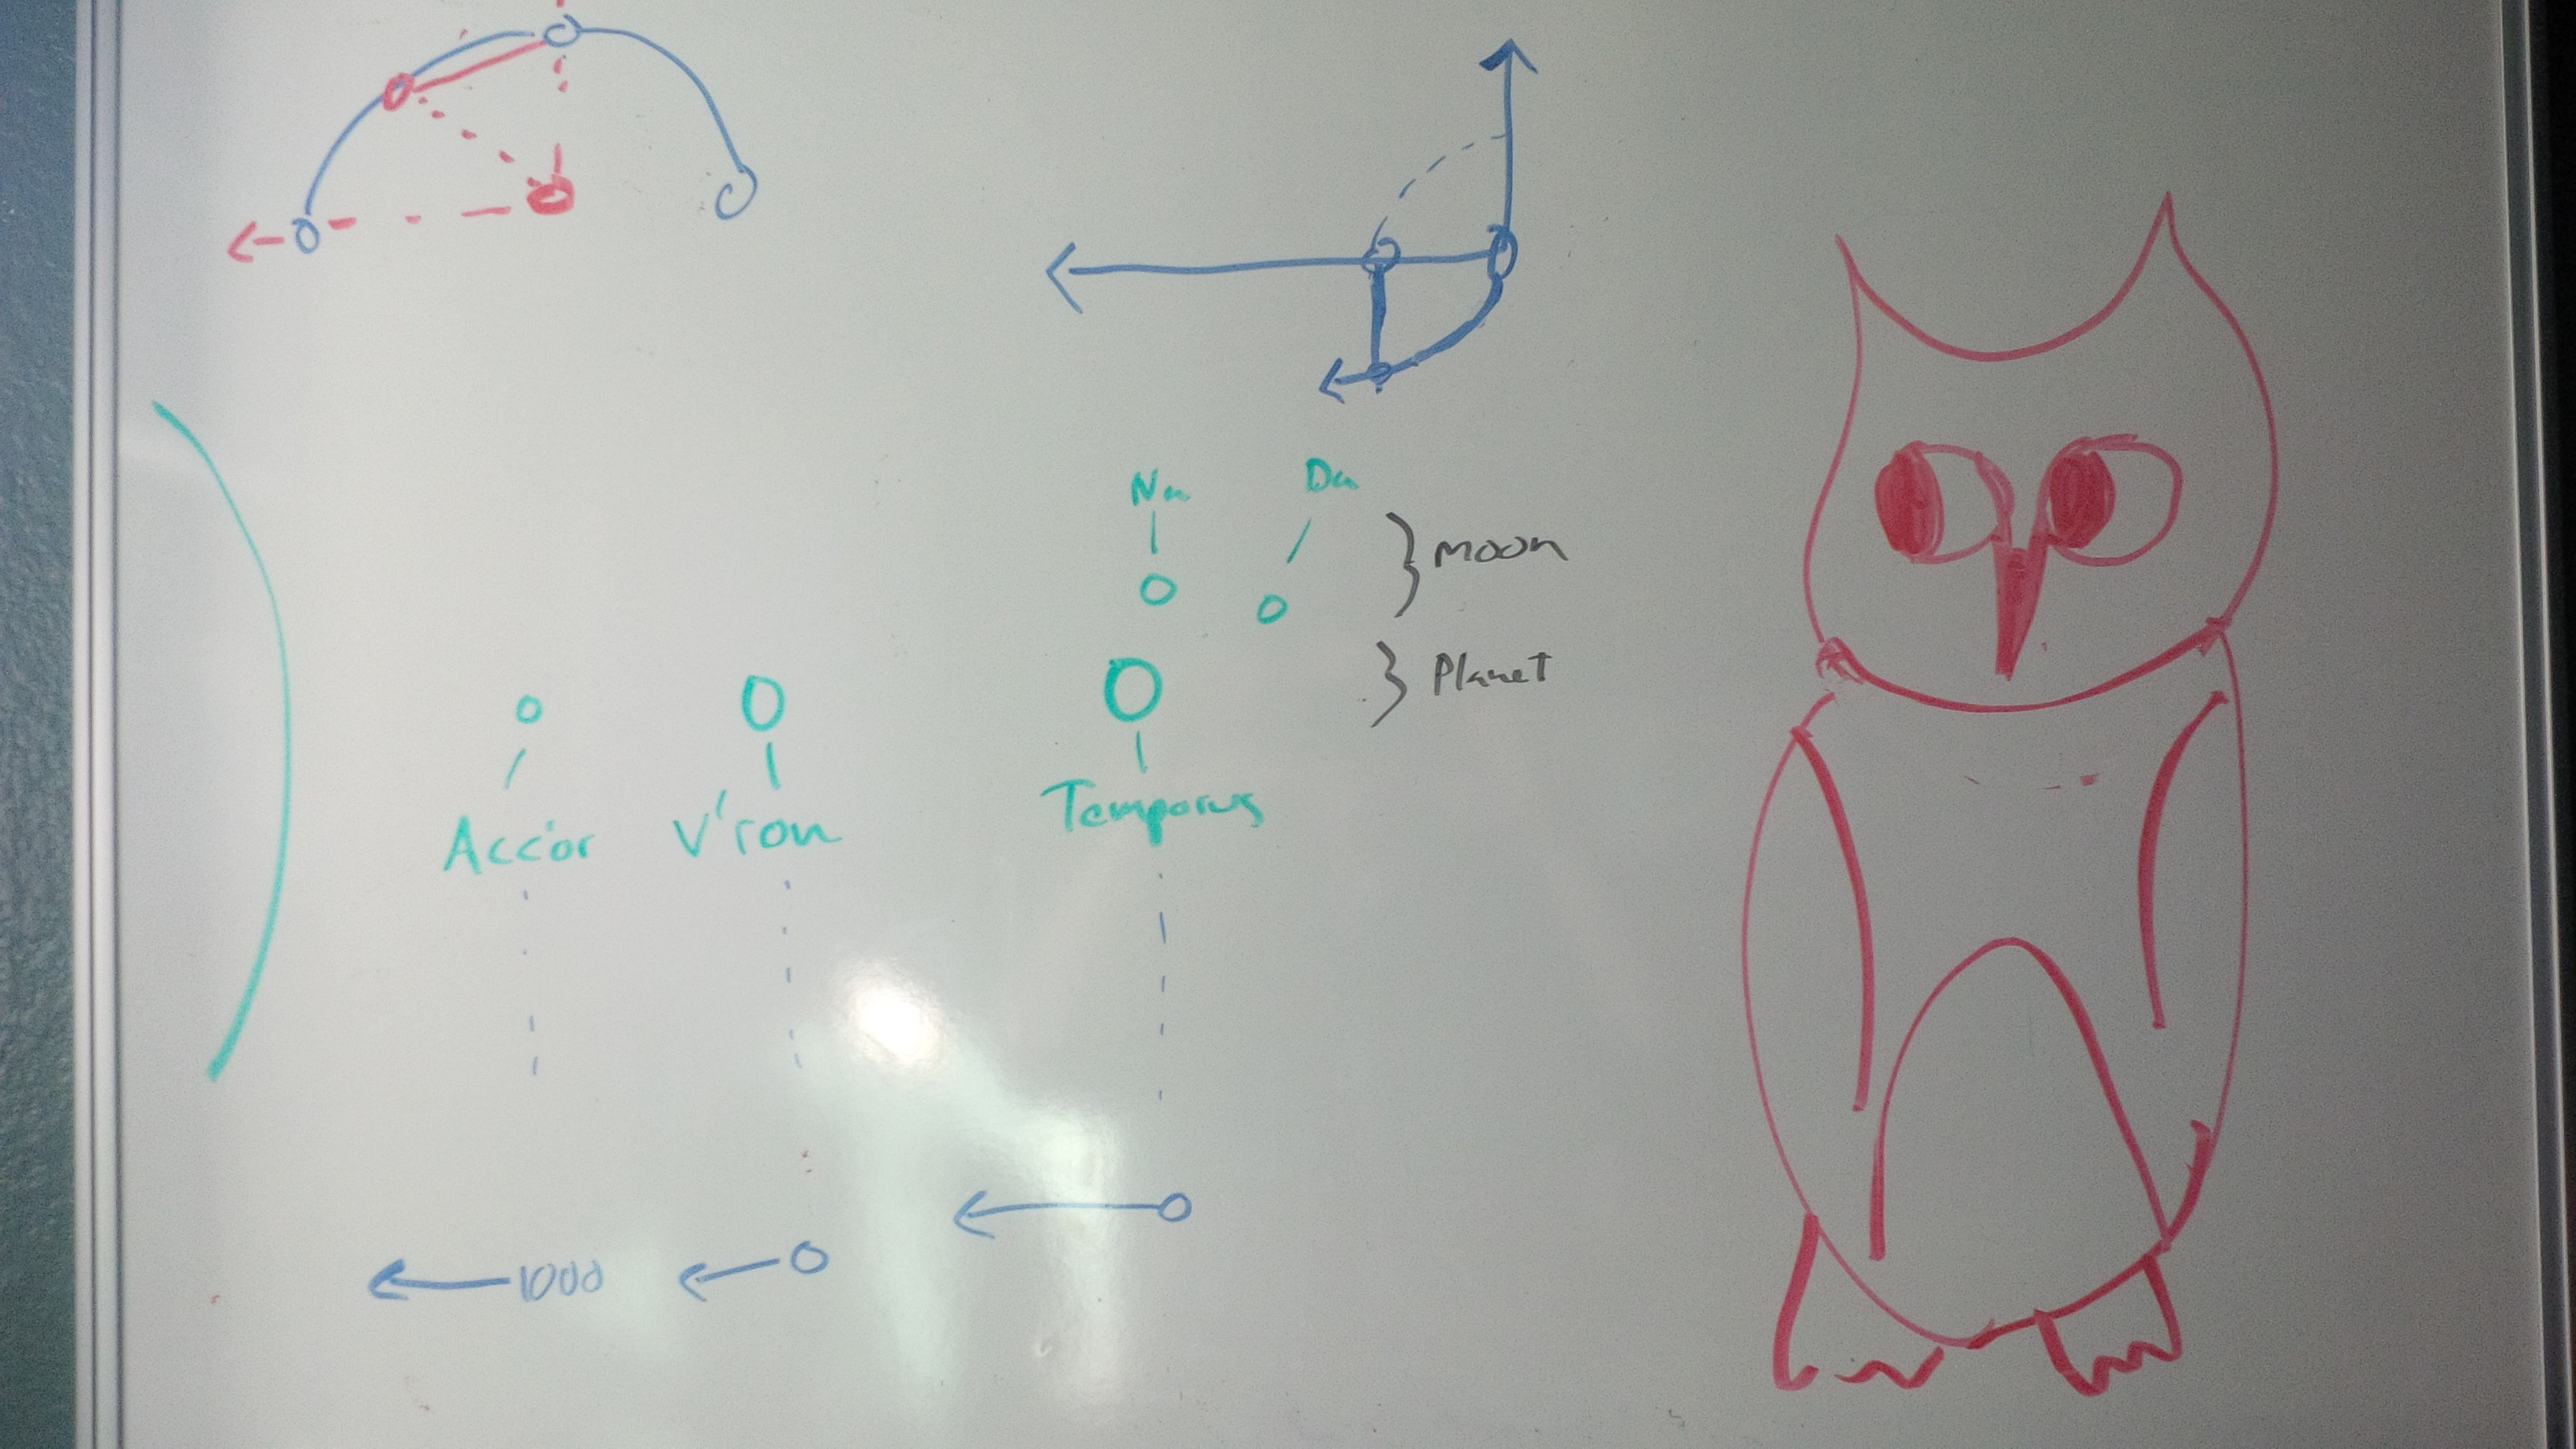 We don't normally take pictures of whiteboards, but we took this photo using BlackBerry 10's Whiteboard mode.